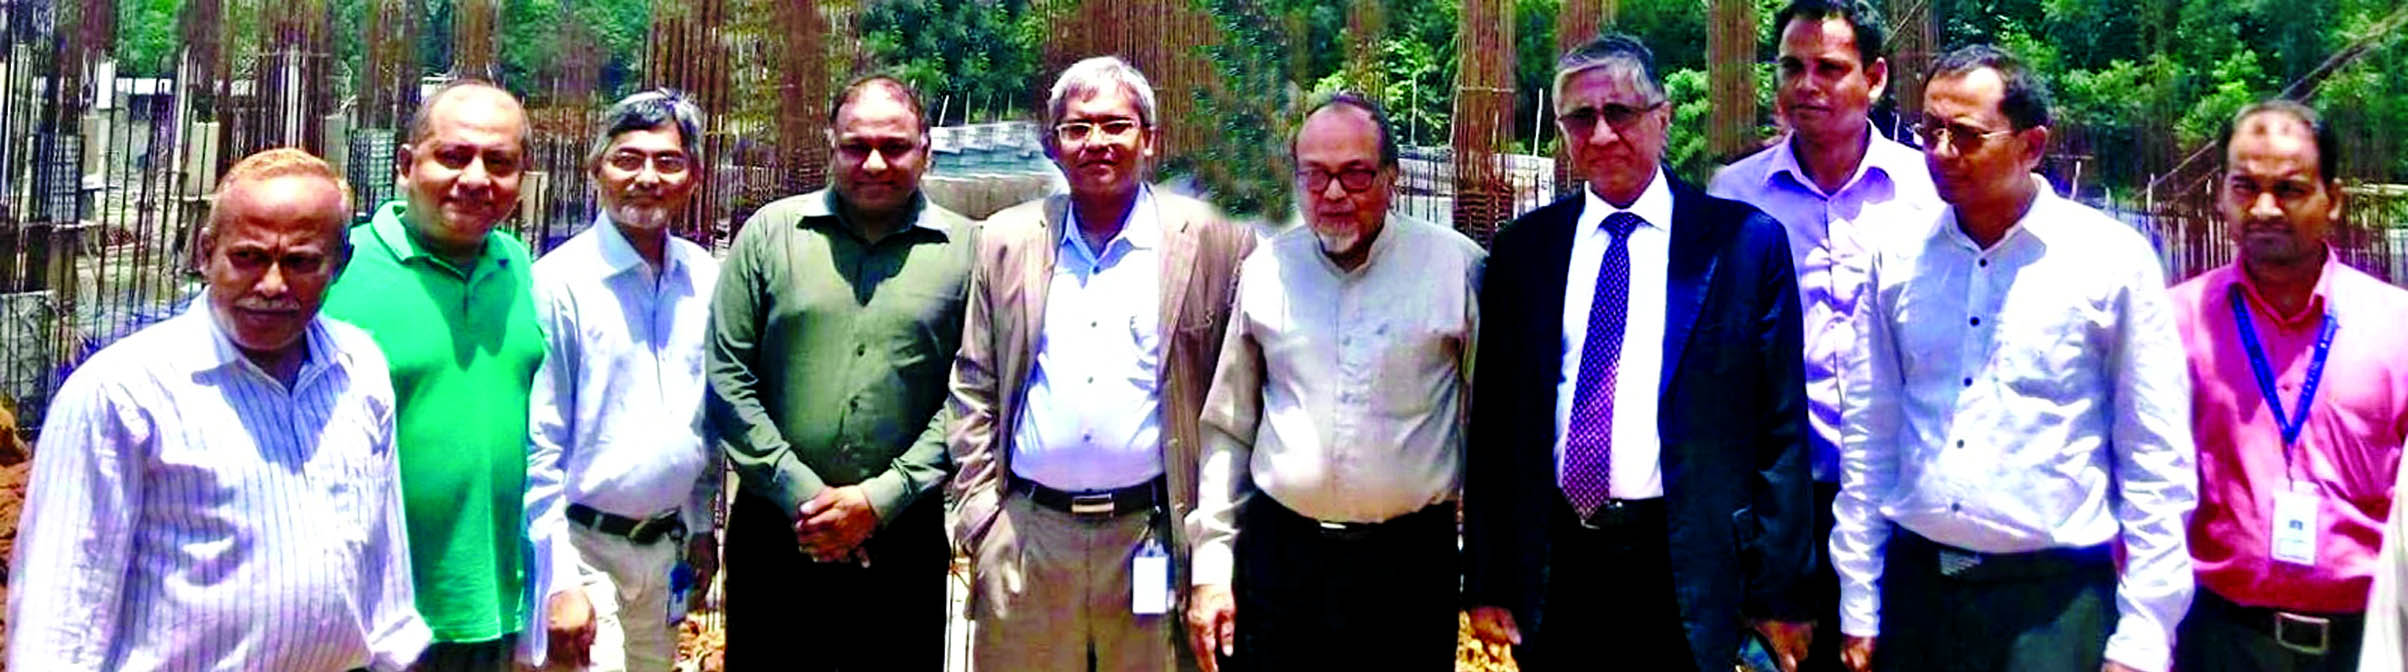 Ahmed Kamal Khan Chowdhury, Managing Director of Prime Bank Limited, poses after visiting the construction work of the project of Birds A&Z Limited at Gorai in Mirzapur recently. The bank financed the project. Syed Nazmul Huque, EVP of Commercial Banking Division of the bank, Eng. Mustafa Anwar, Chairman and Nazmus Shariar Saadat Anwar, Managing Director of the engineering farm were also present.